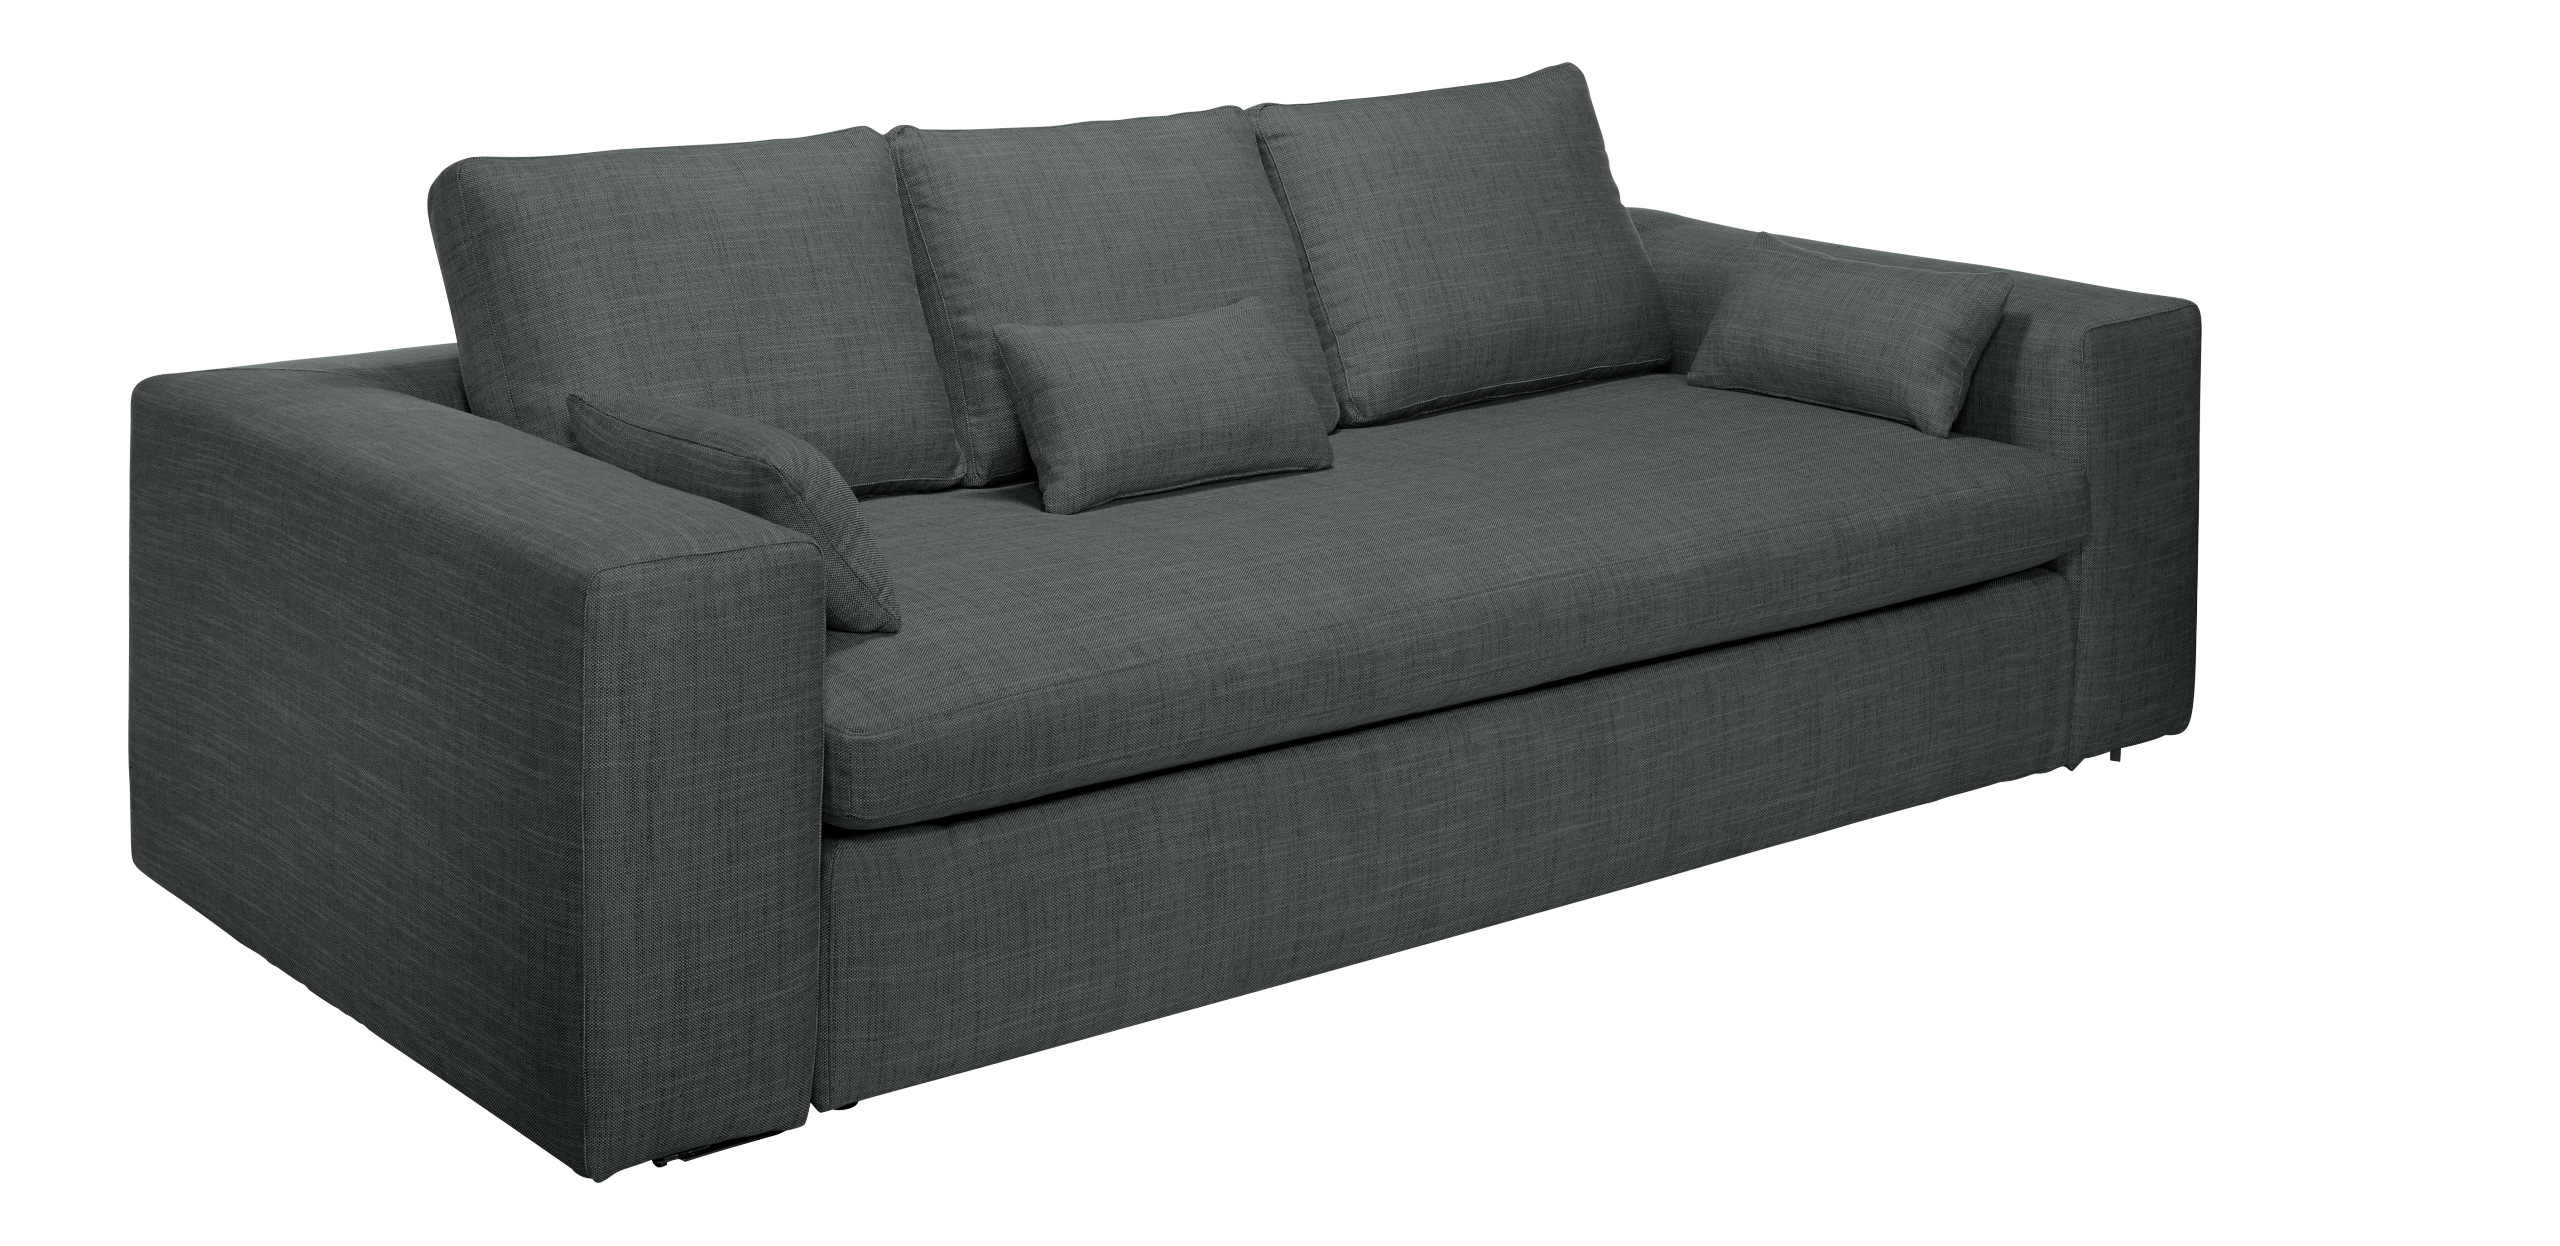 Canape 3 Place Convertible Cyrus Canapé Lit 3 Places En Tissu Deco Sofa Couch Furniture